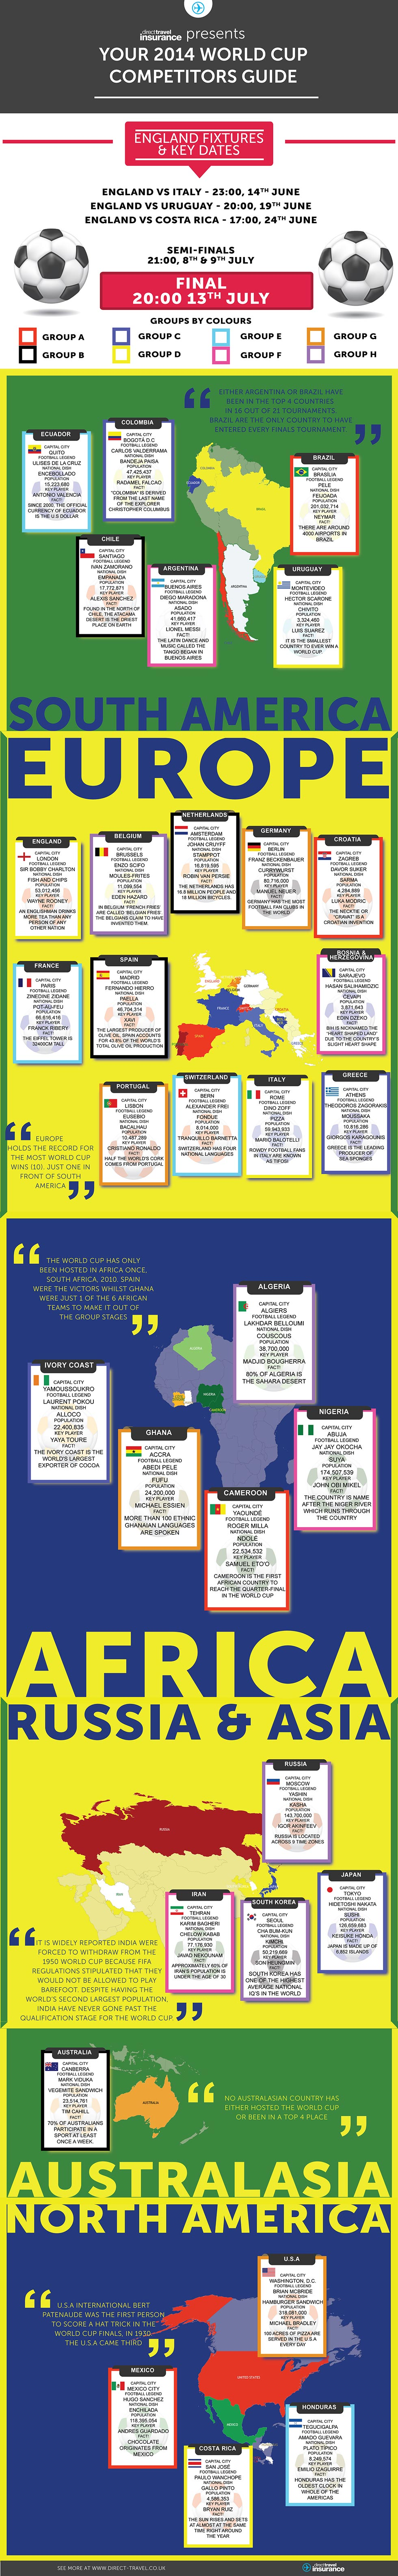 Direct Travel 2014 World Cup infographic